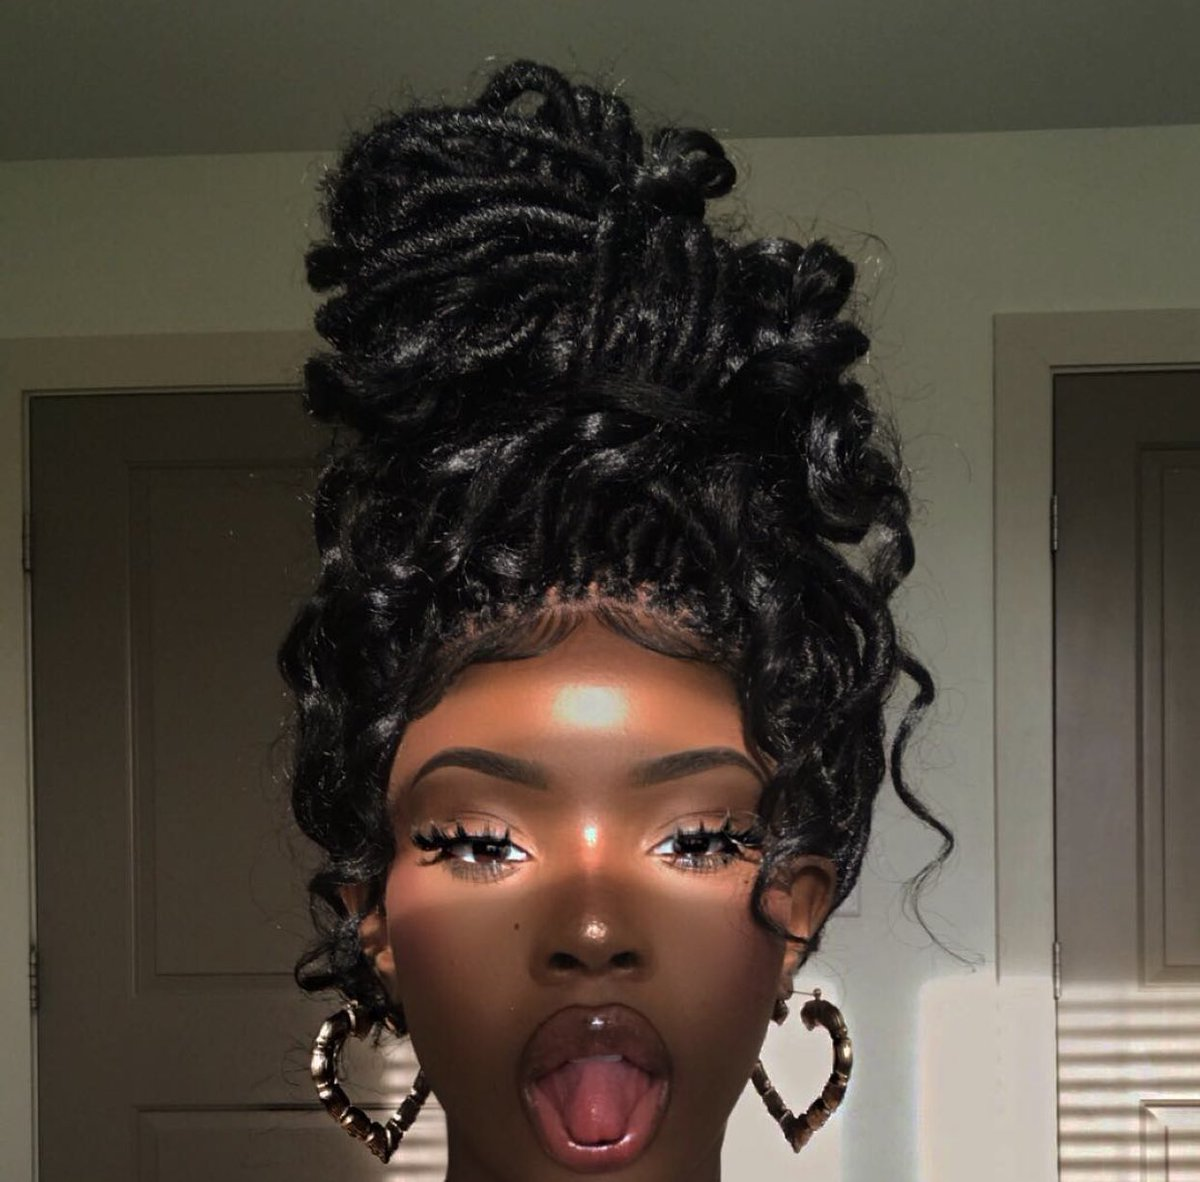 Replying to @AfroStunnerz: A Barbie you can't buy 😜